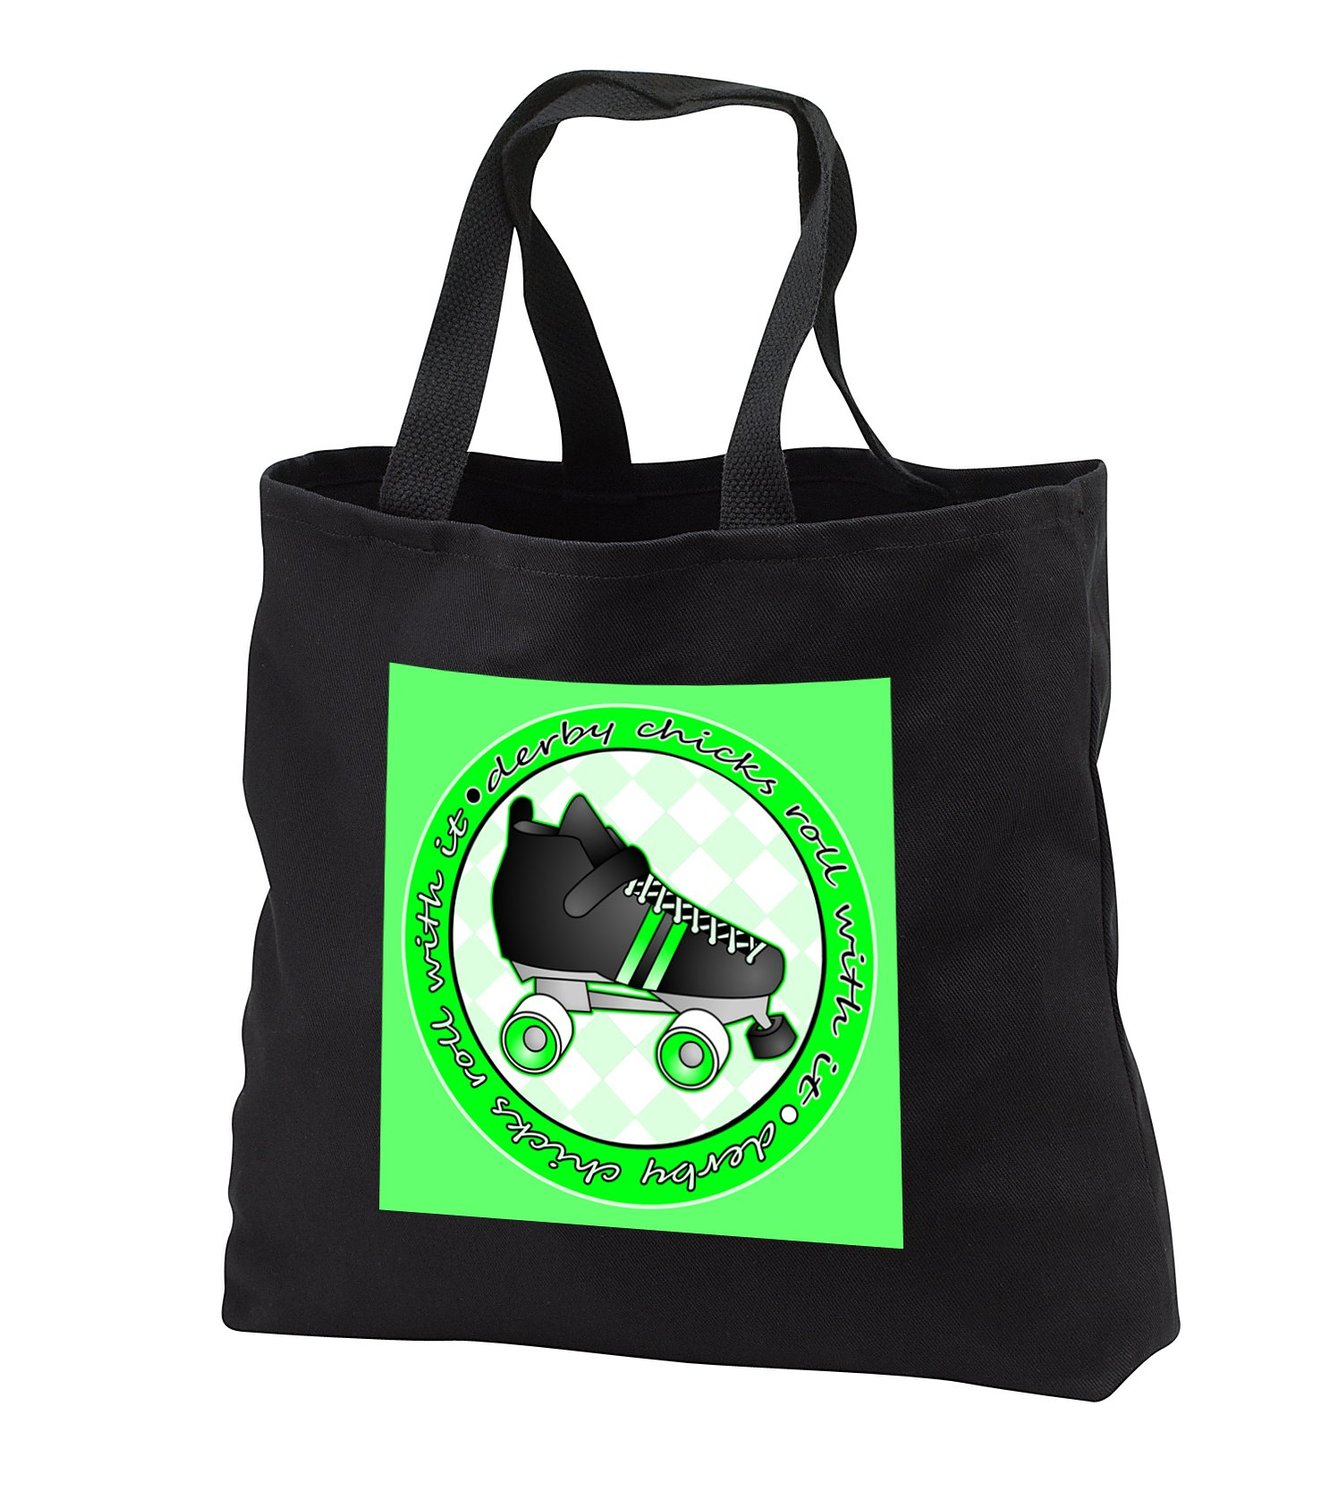 Janna Salak Designs Roller Derby - Derby Chicks Roll With It Green with Black Roller Skate - Tote Bags